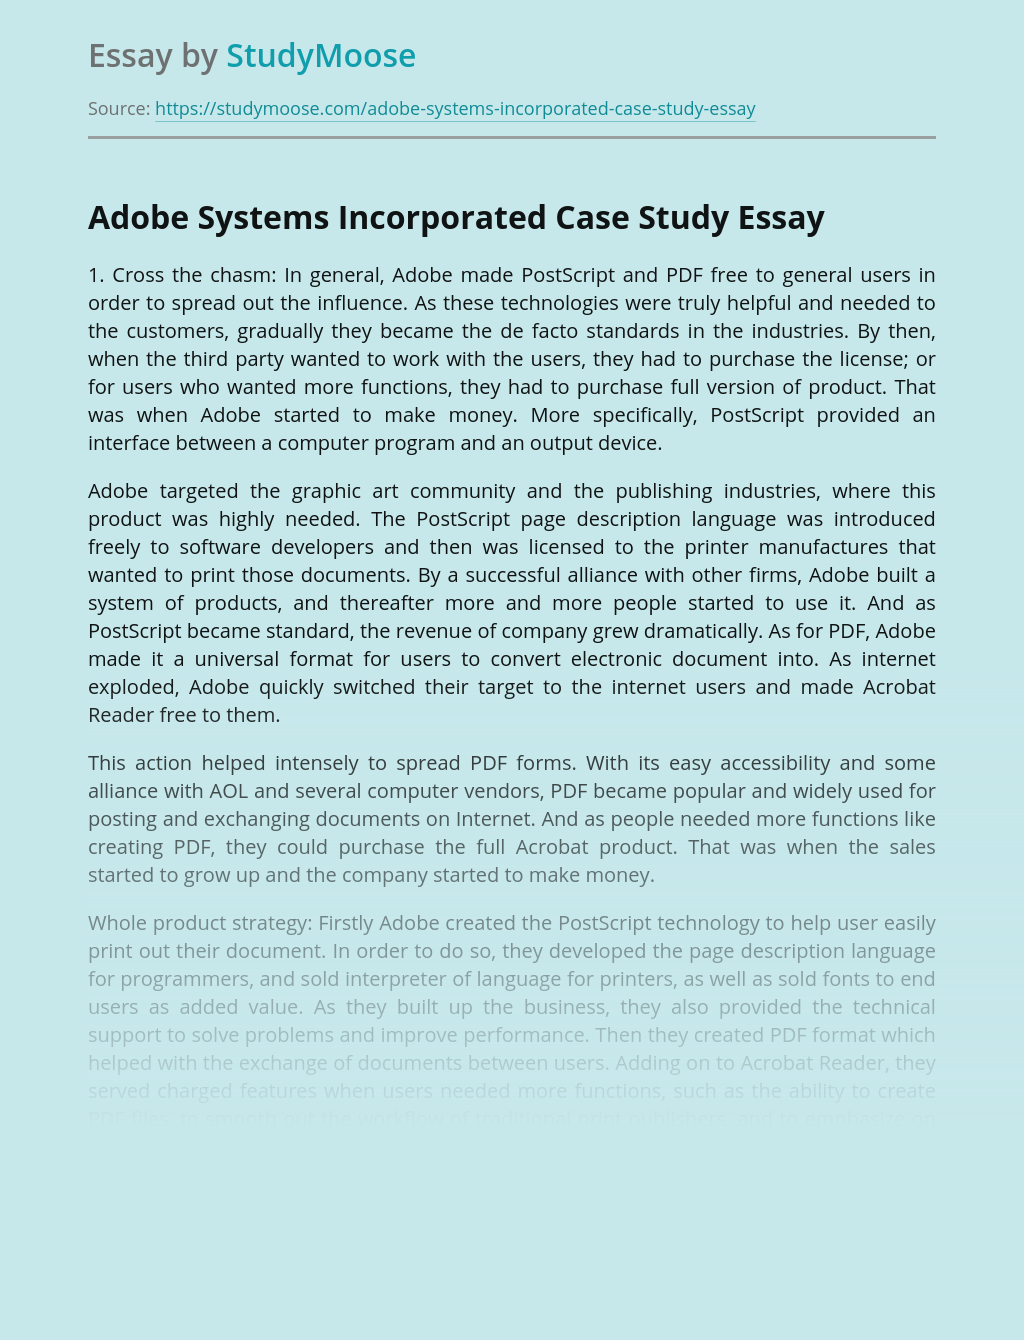 Adobe Systems Incorporated Case Study